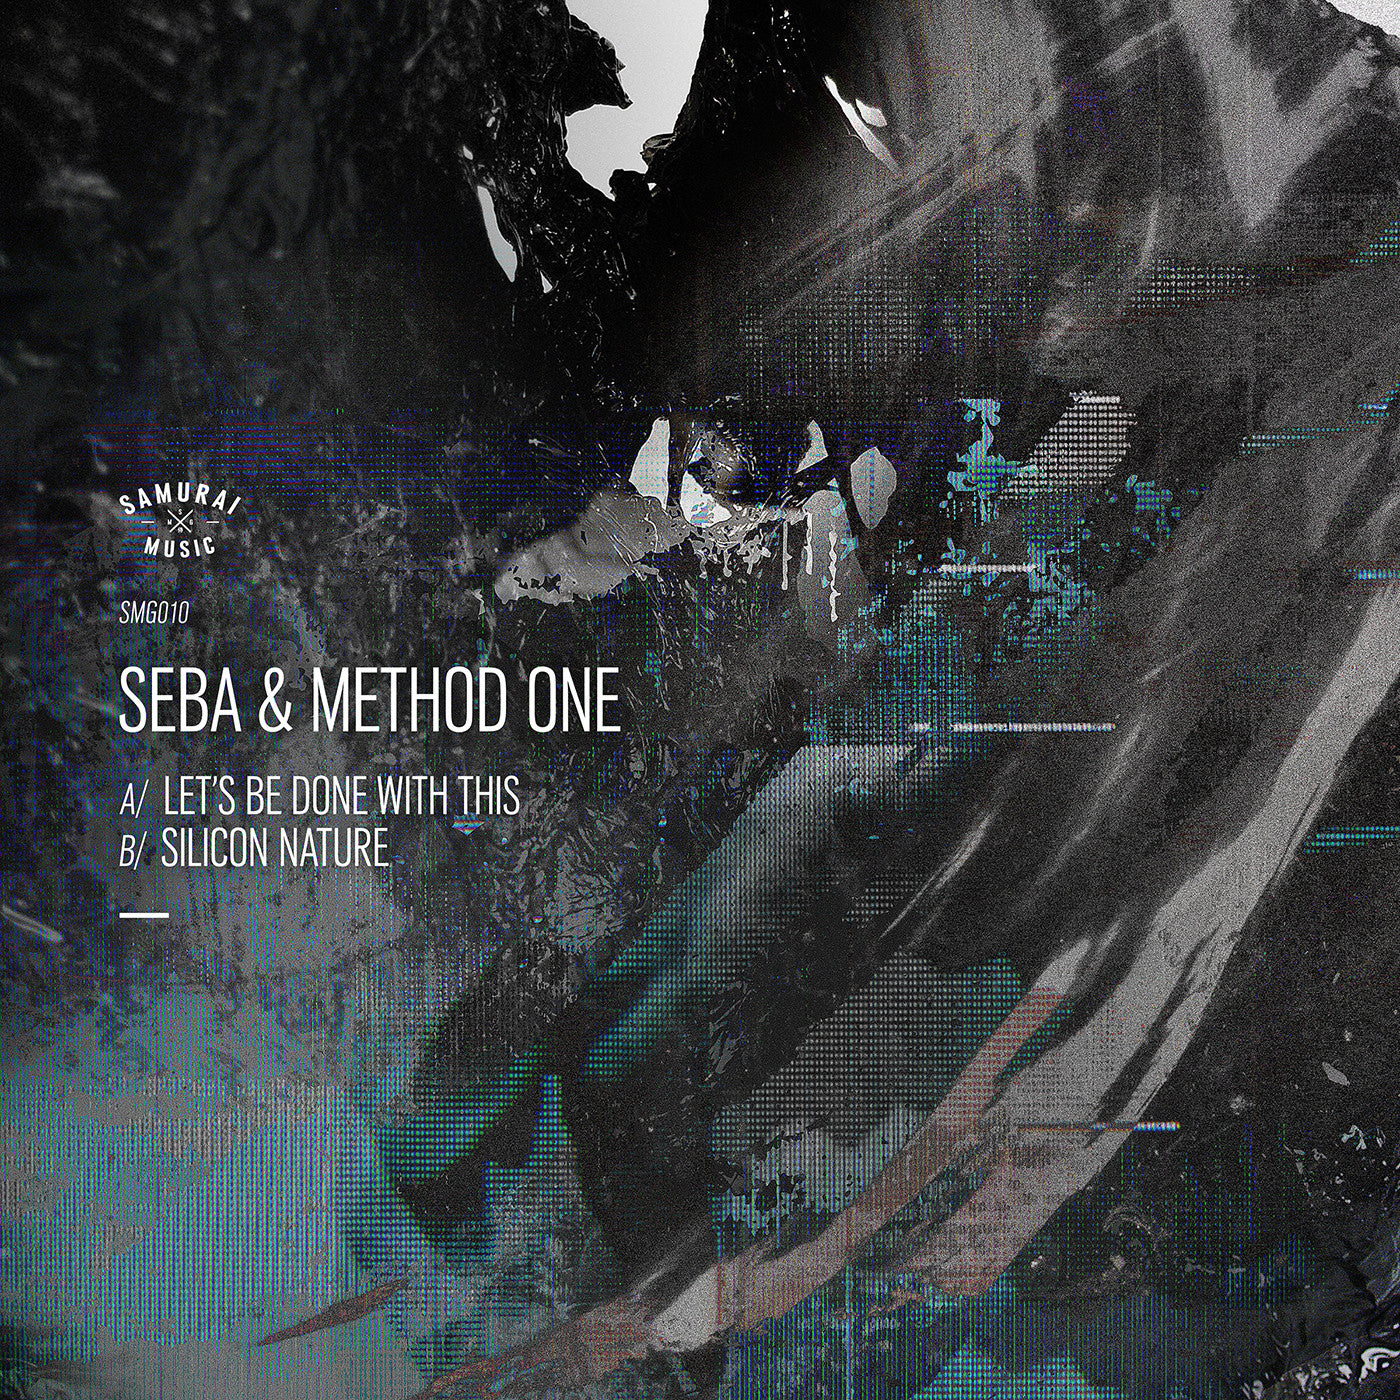 Seba & Method One - Let's Be Done With This / Silicon Nature - Unearthed Sounds